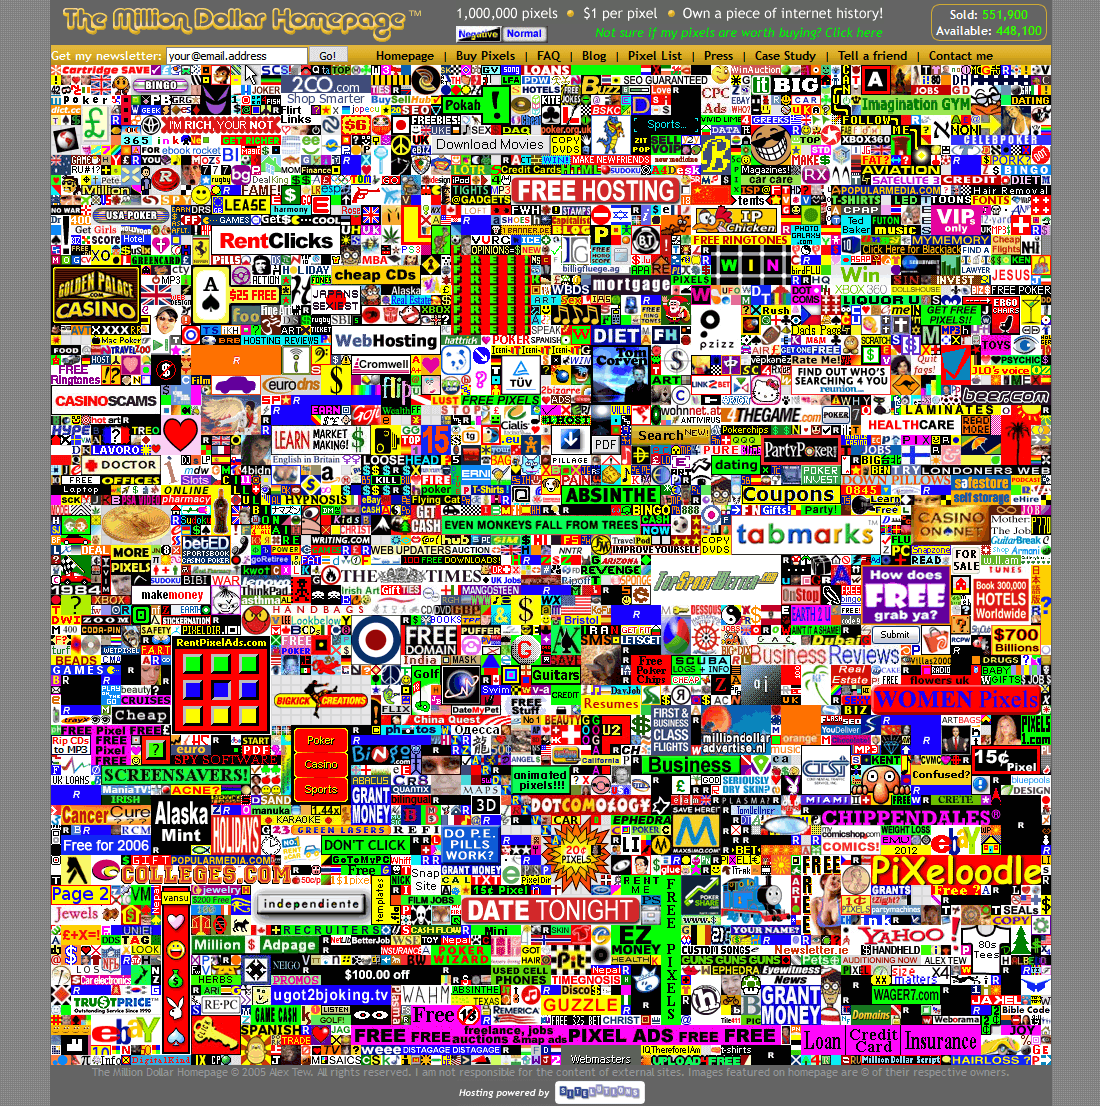 The Million Dollar Homepage 2005